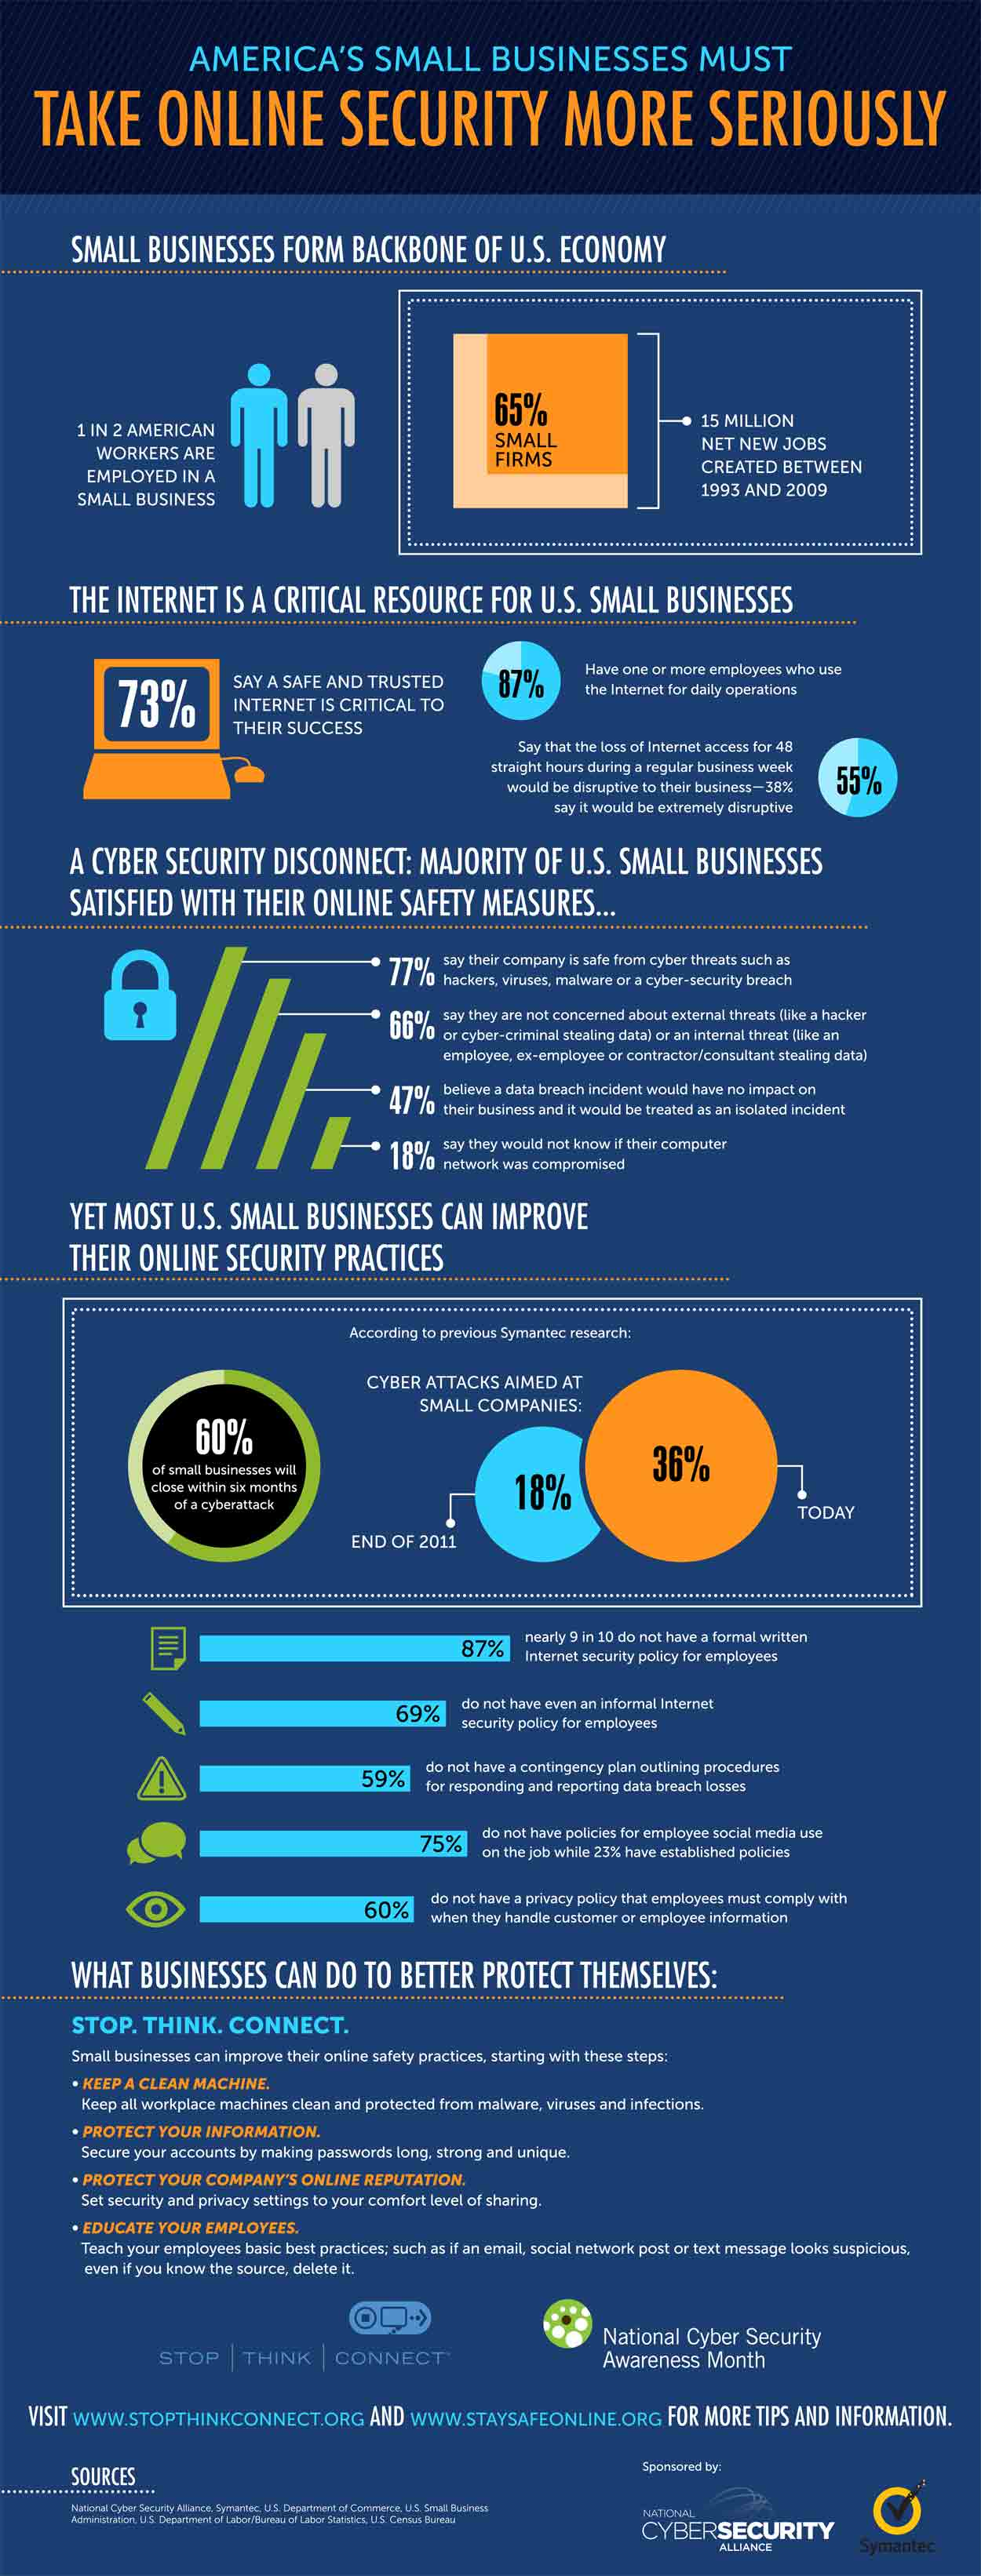 10 Cyber Security Tips for Small Business [Infographic]